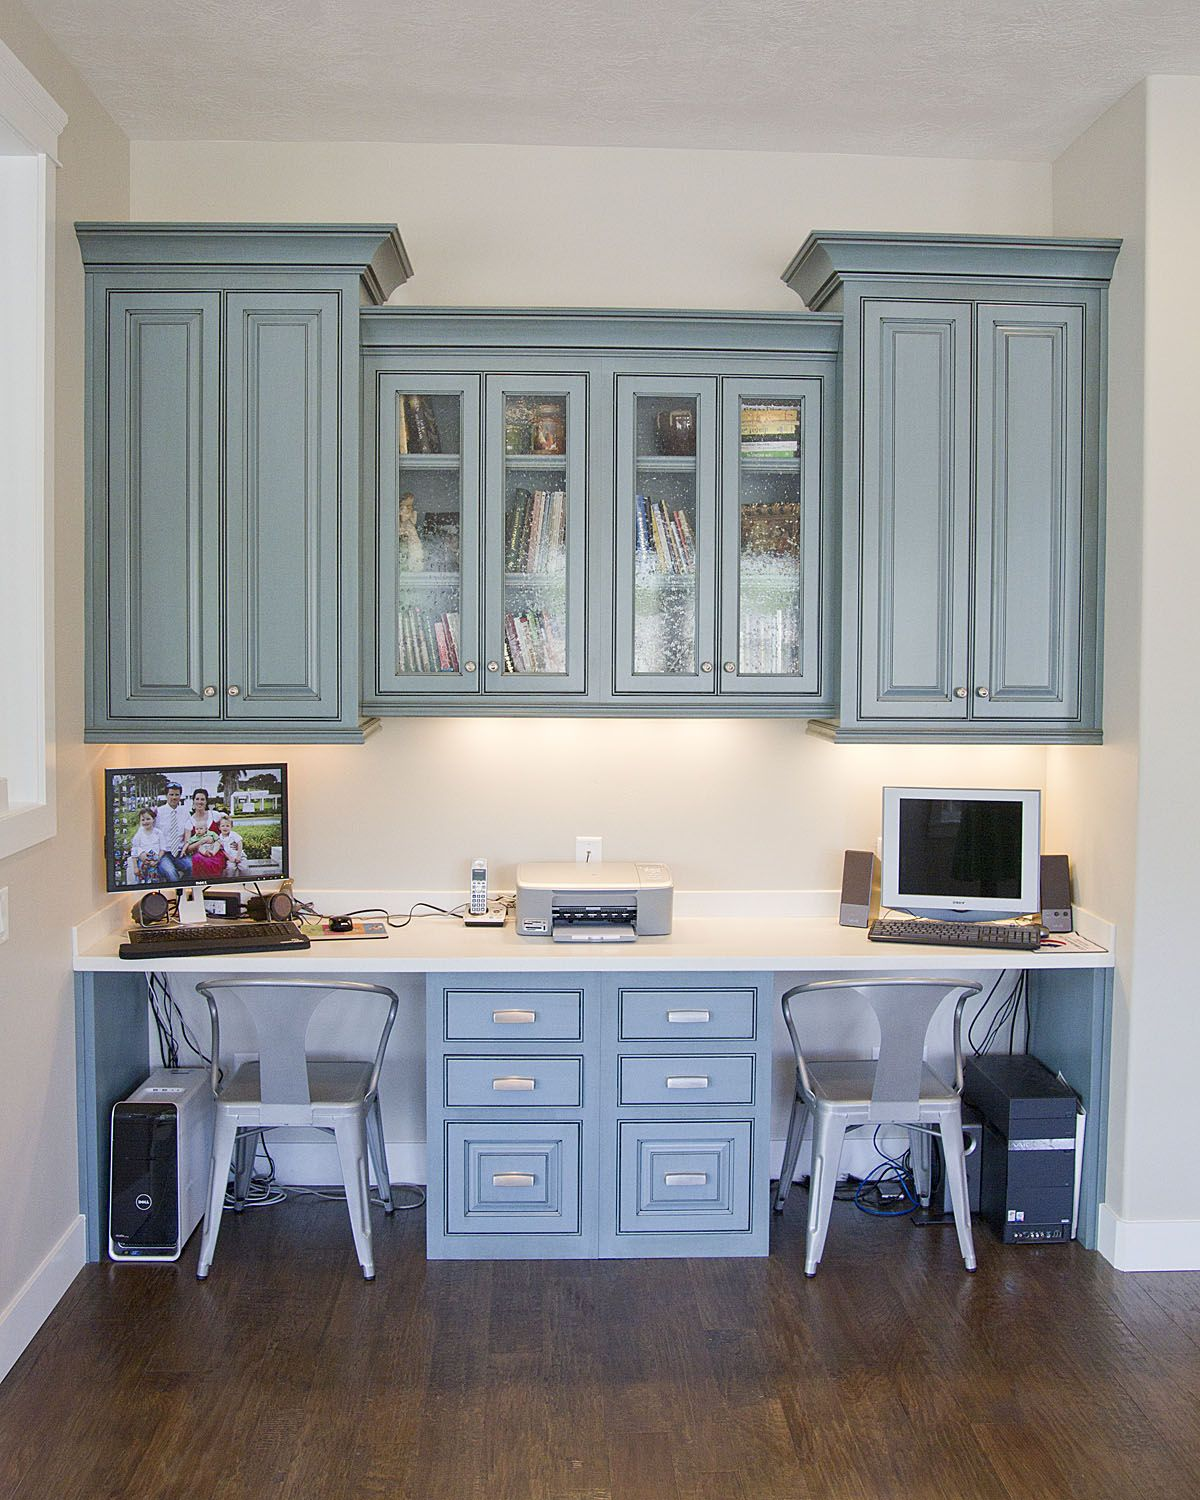 Kitchen Cabinets Desk Workspace With Two Work Areas Home Office ...